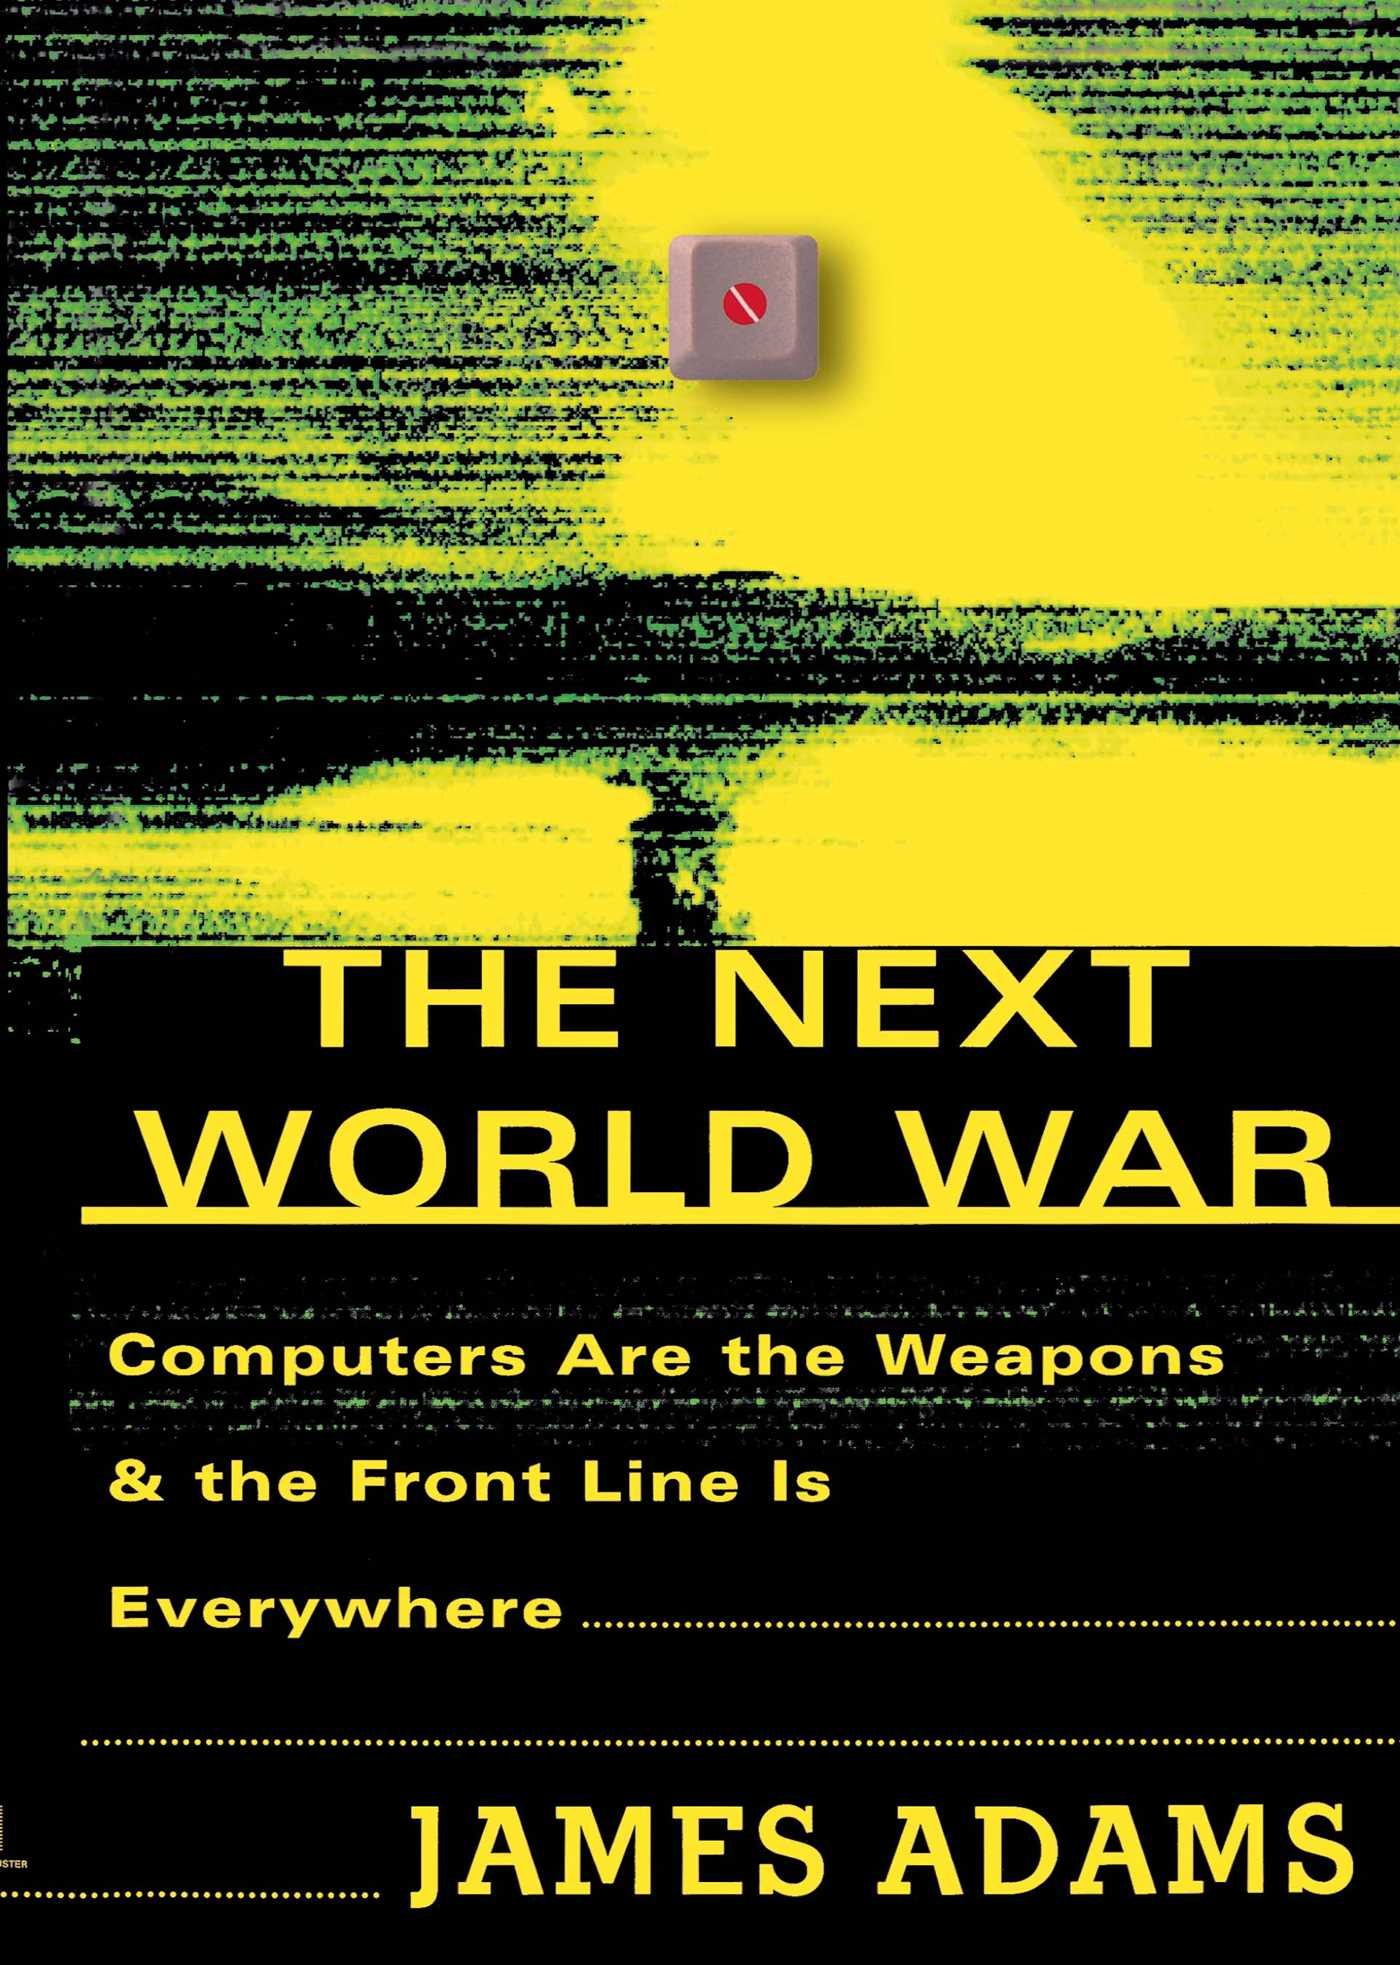 The next world war 9780743223805 hr